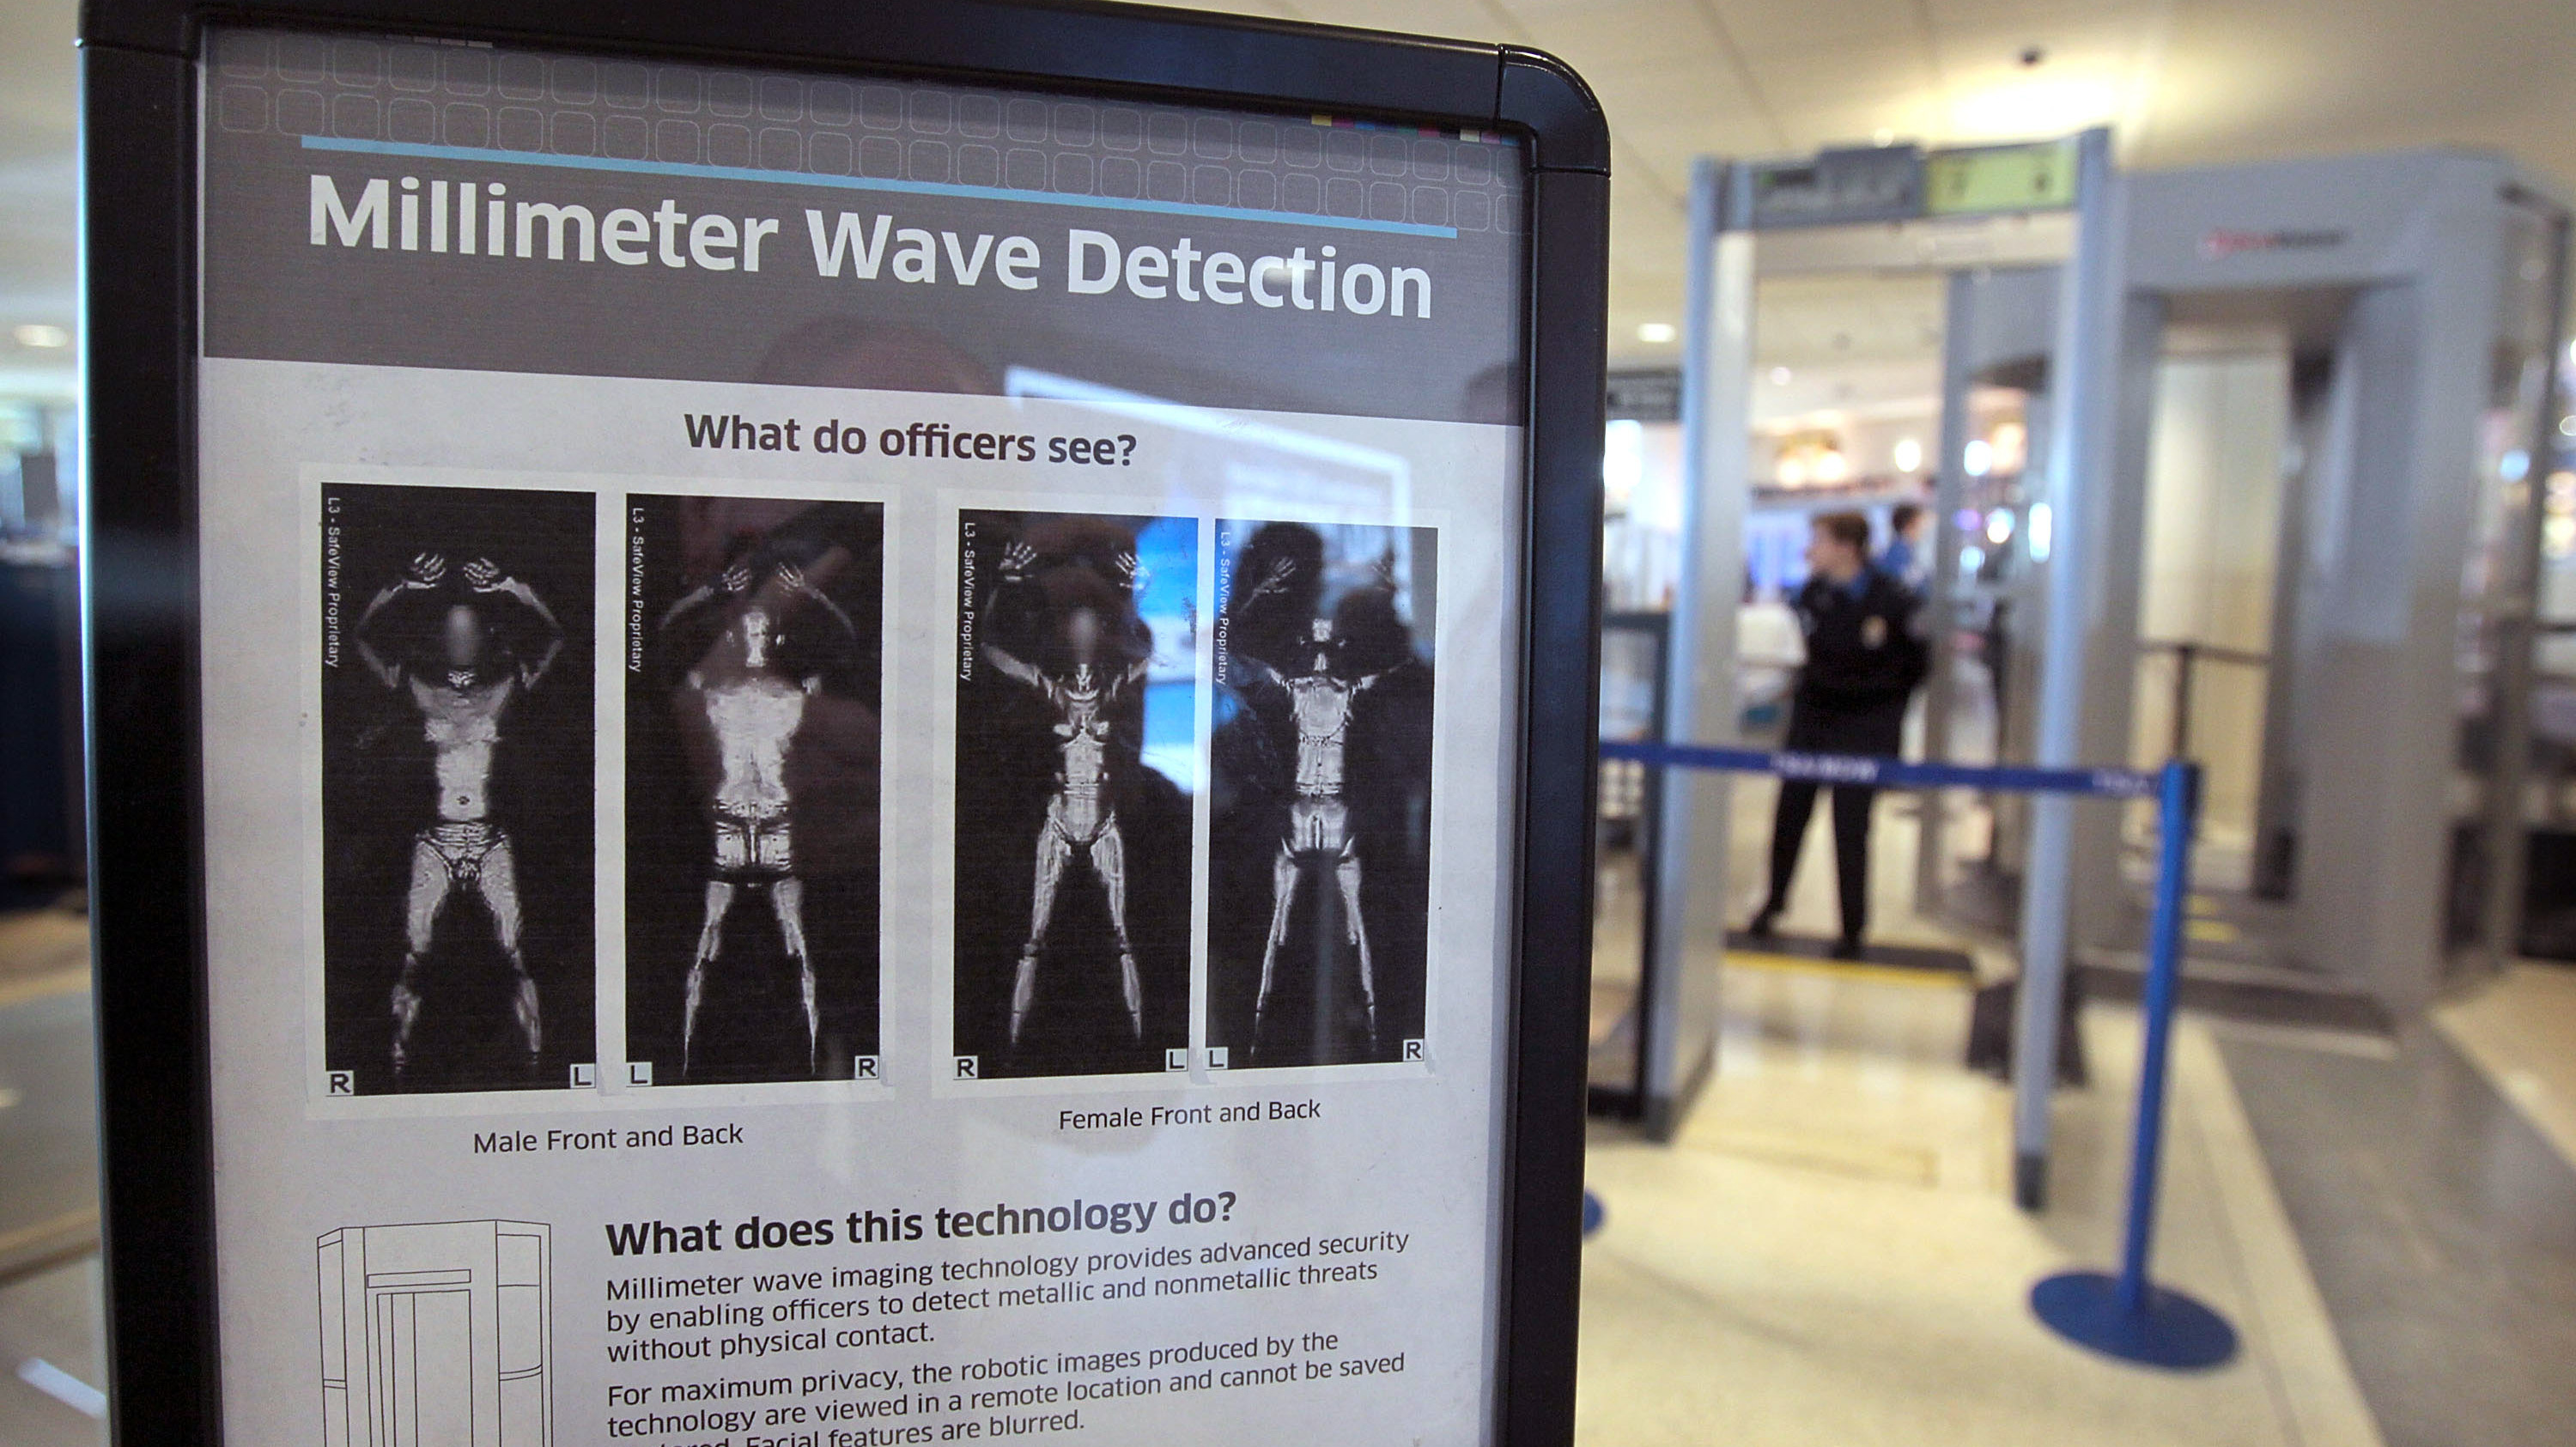 Invasive Body Scanners Will Be Removed From Airports